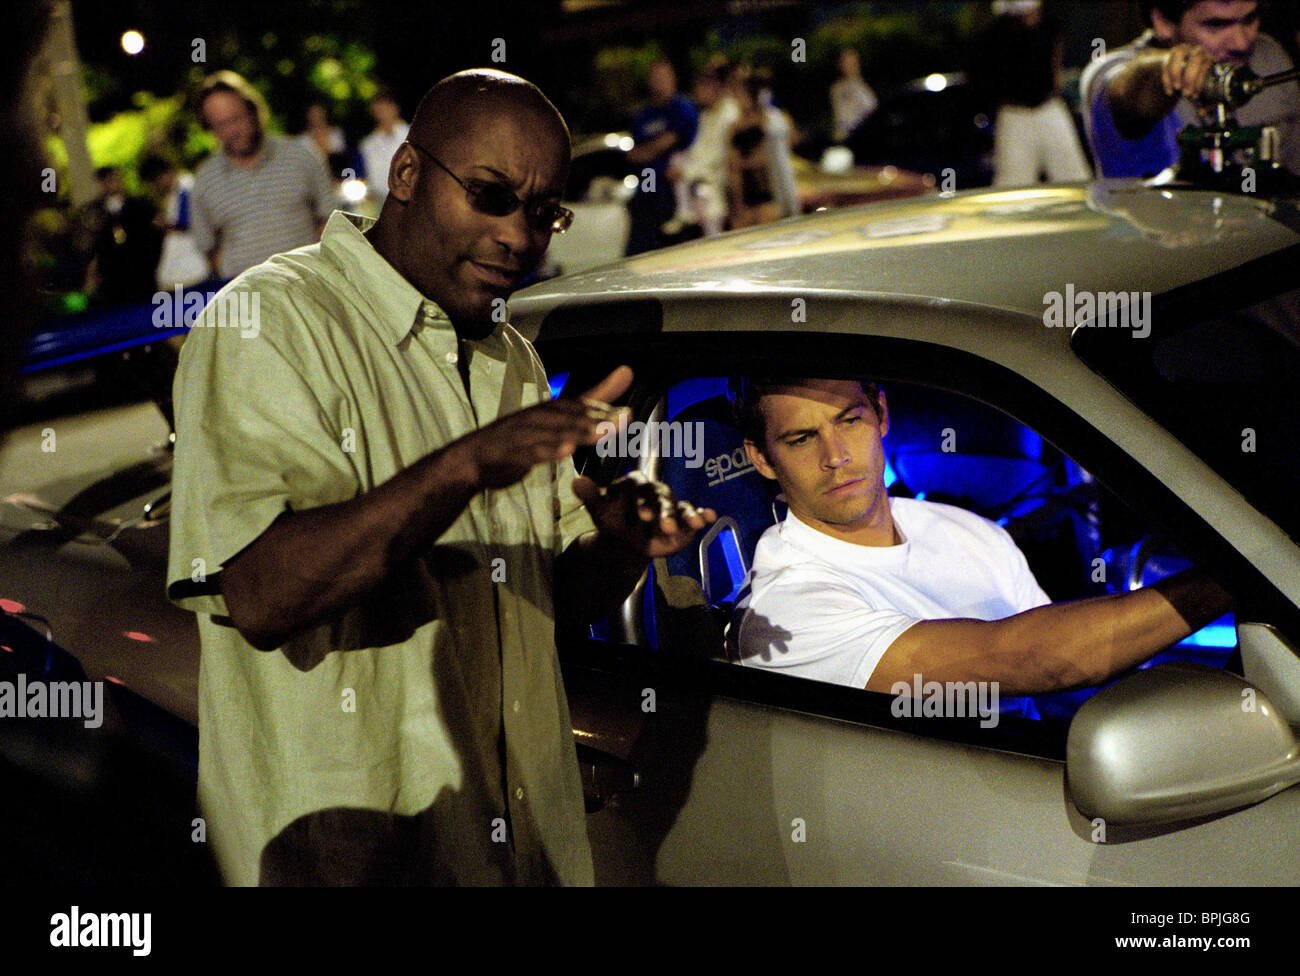 JOHN SINGLETON PAUL WALKER 2 FAST FURIOUS THE AND 2003